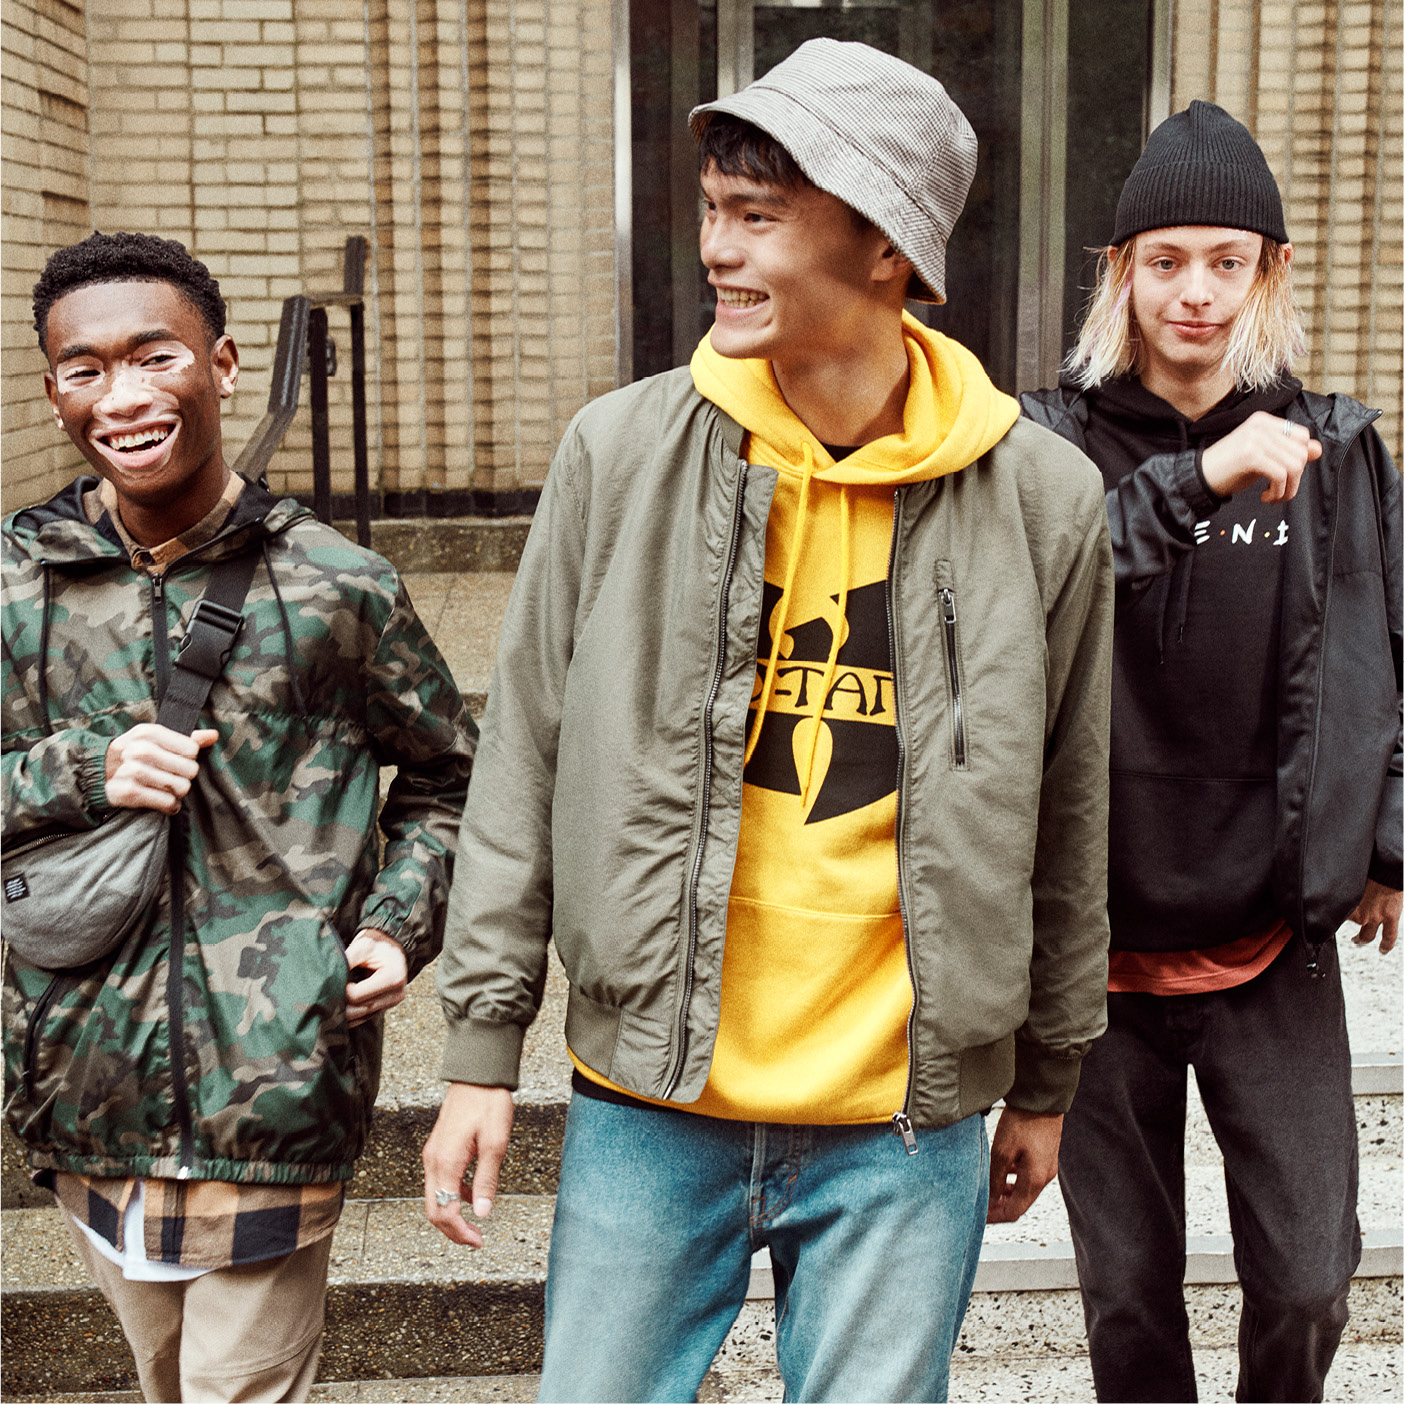 Three teen boys, wearing jackets, two with hats walking together one with fanny pack around his shoulder walking down stairs.